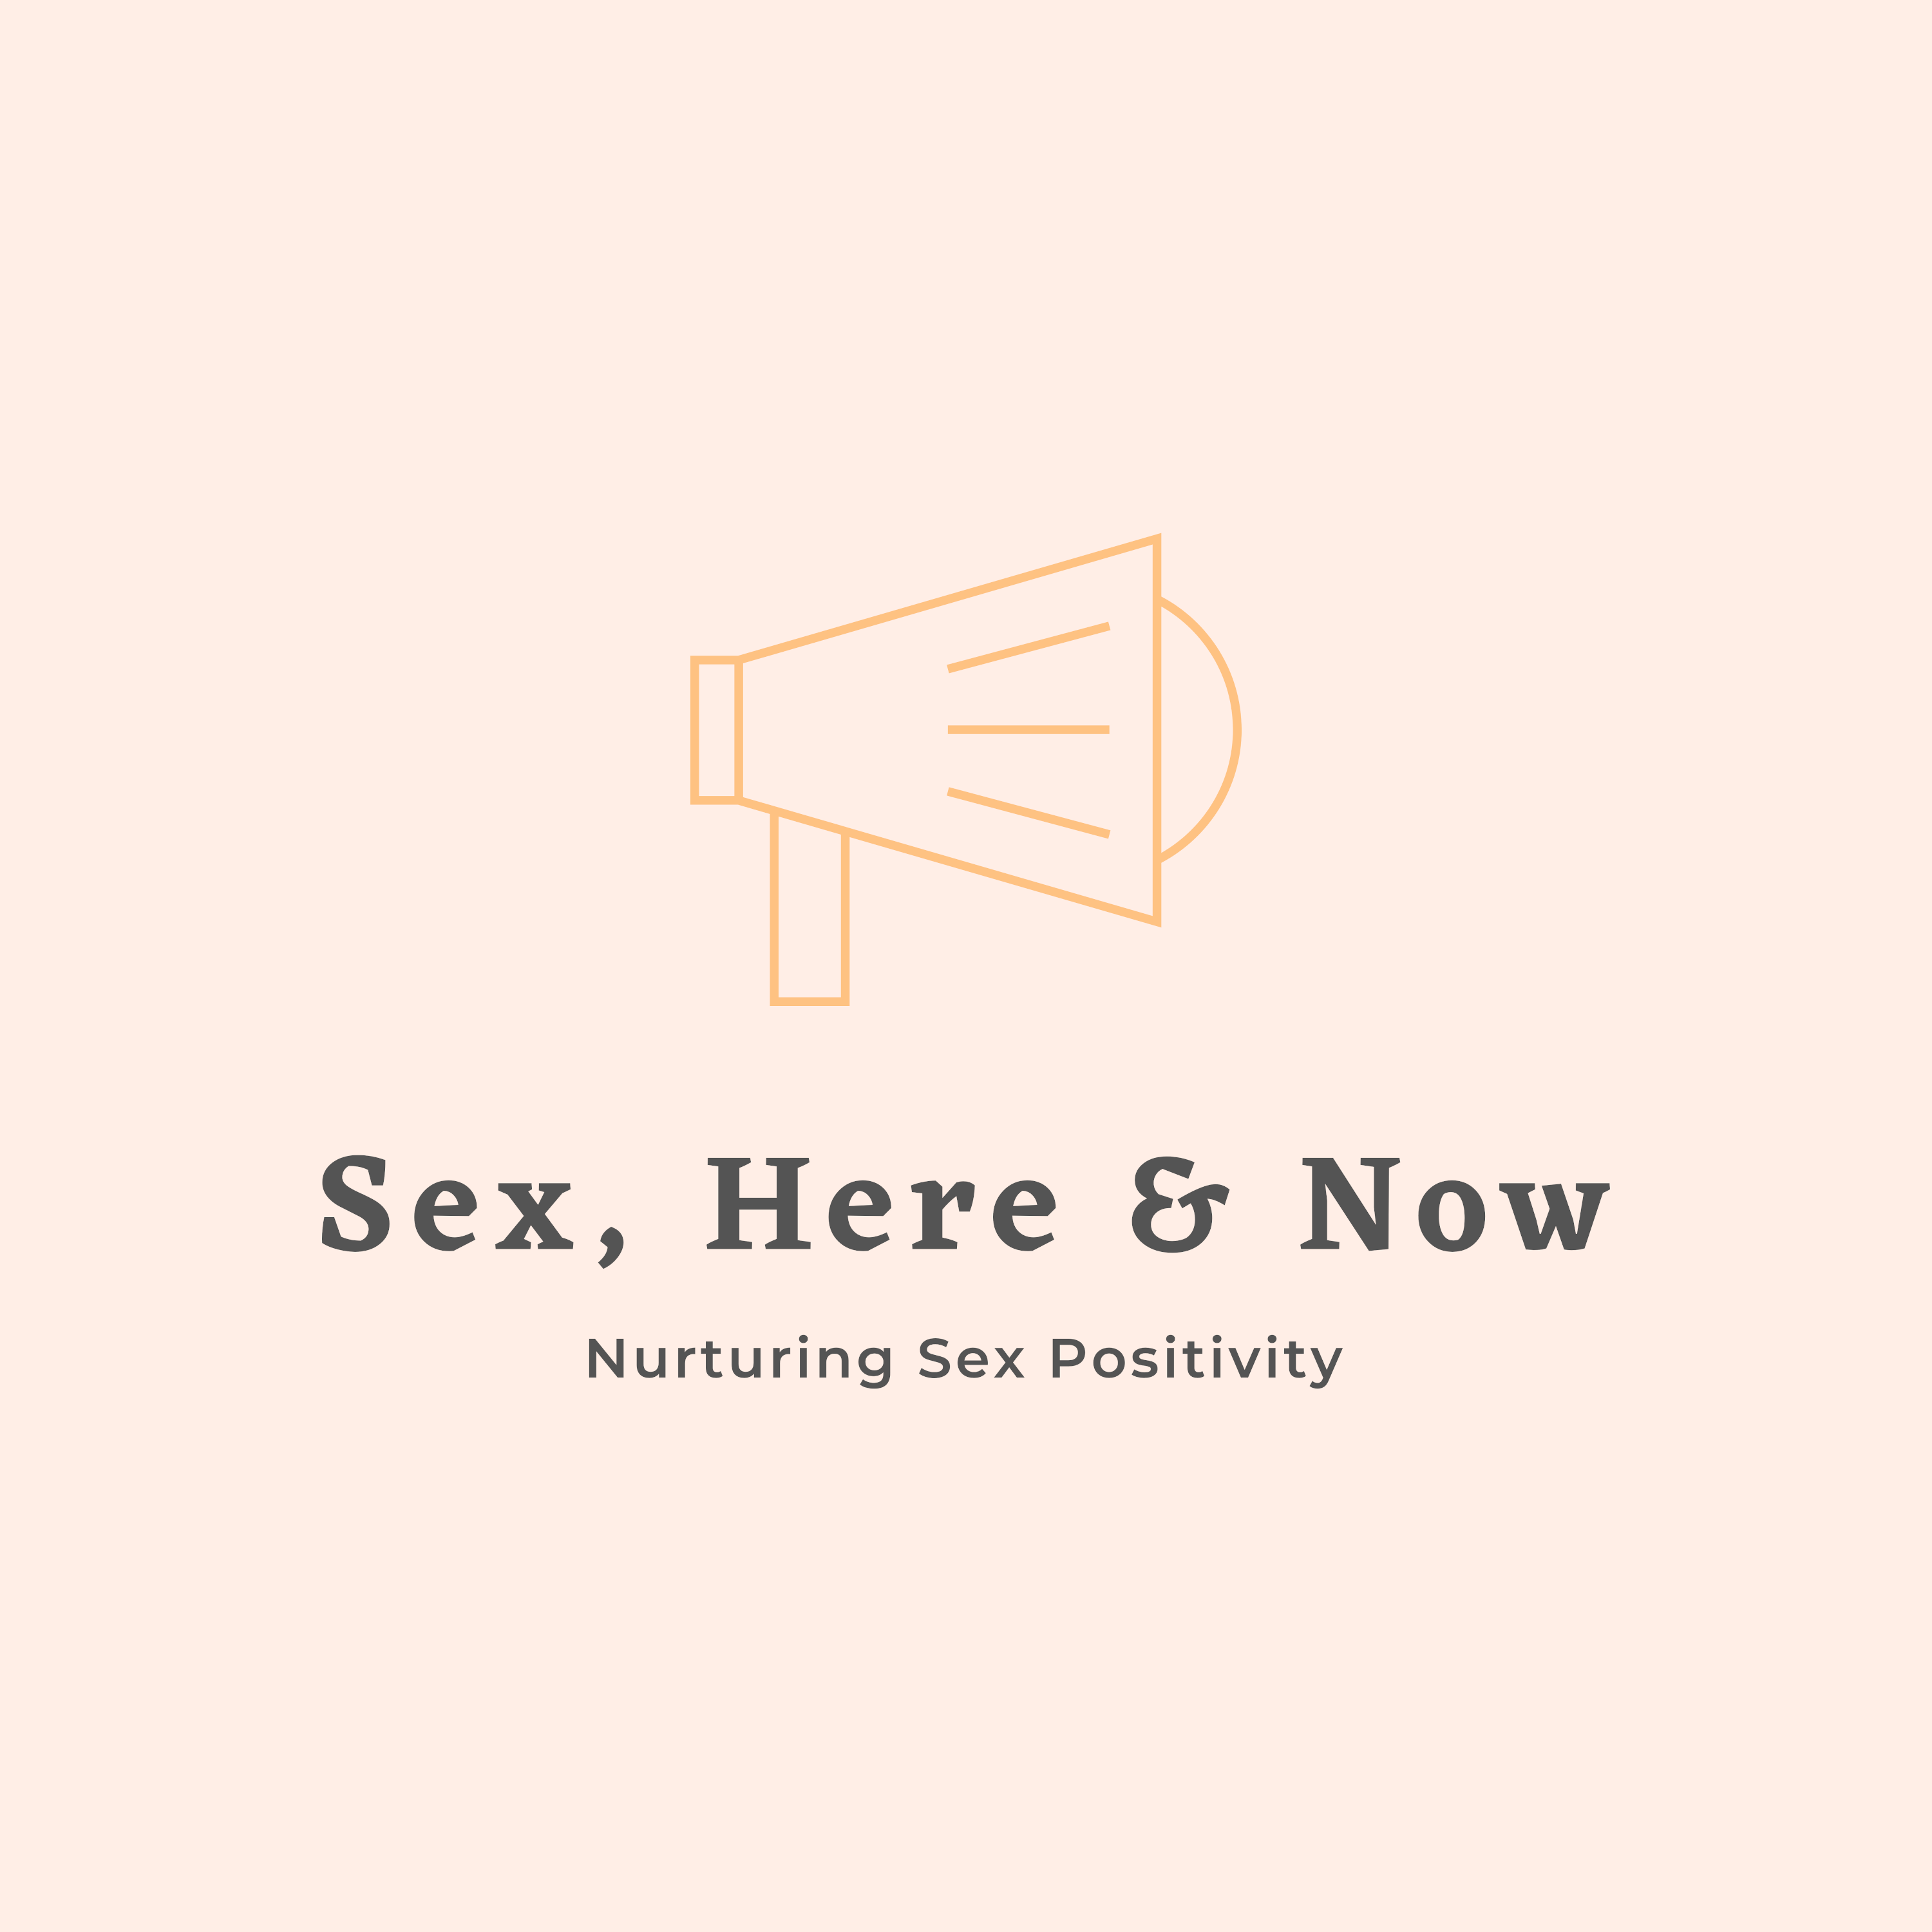 Sex, Here & Now